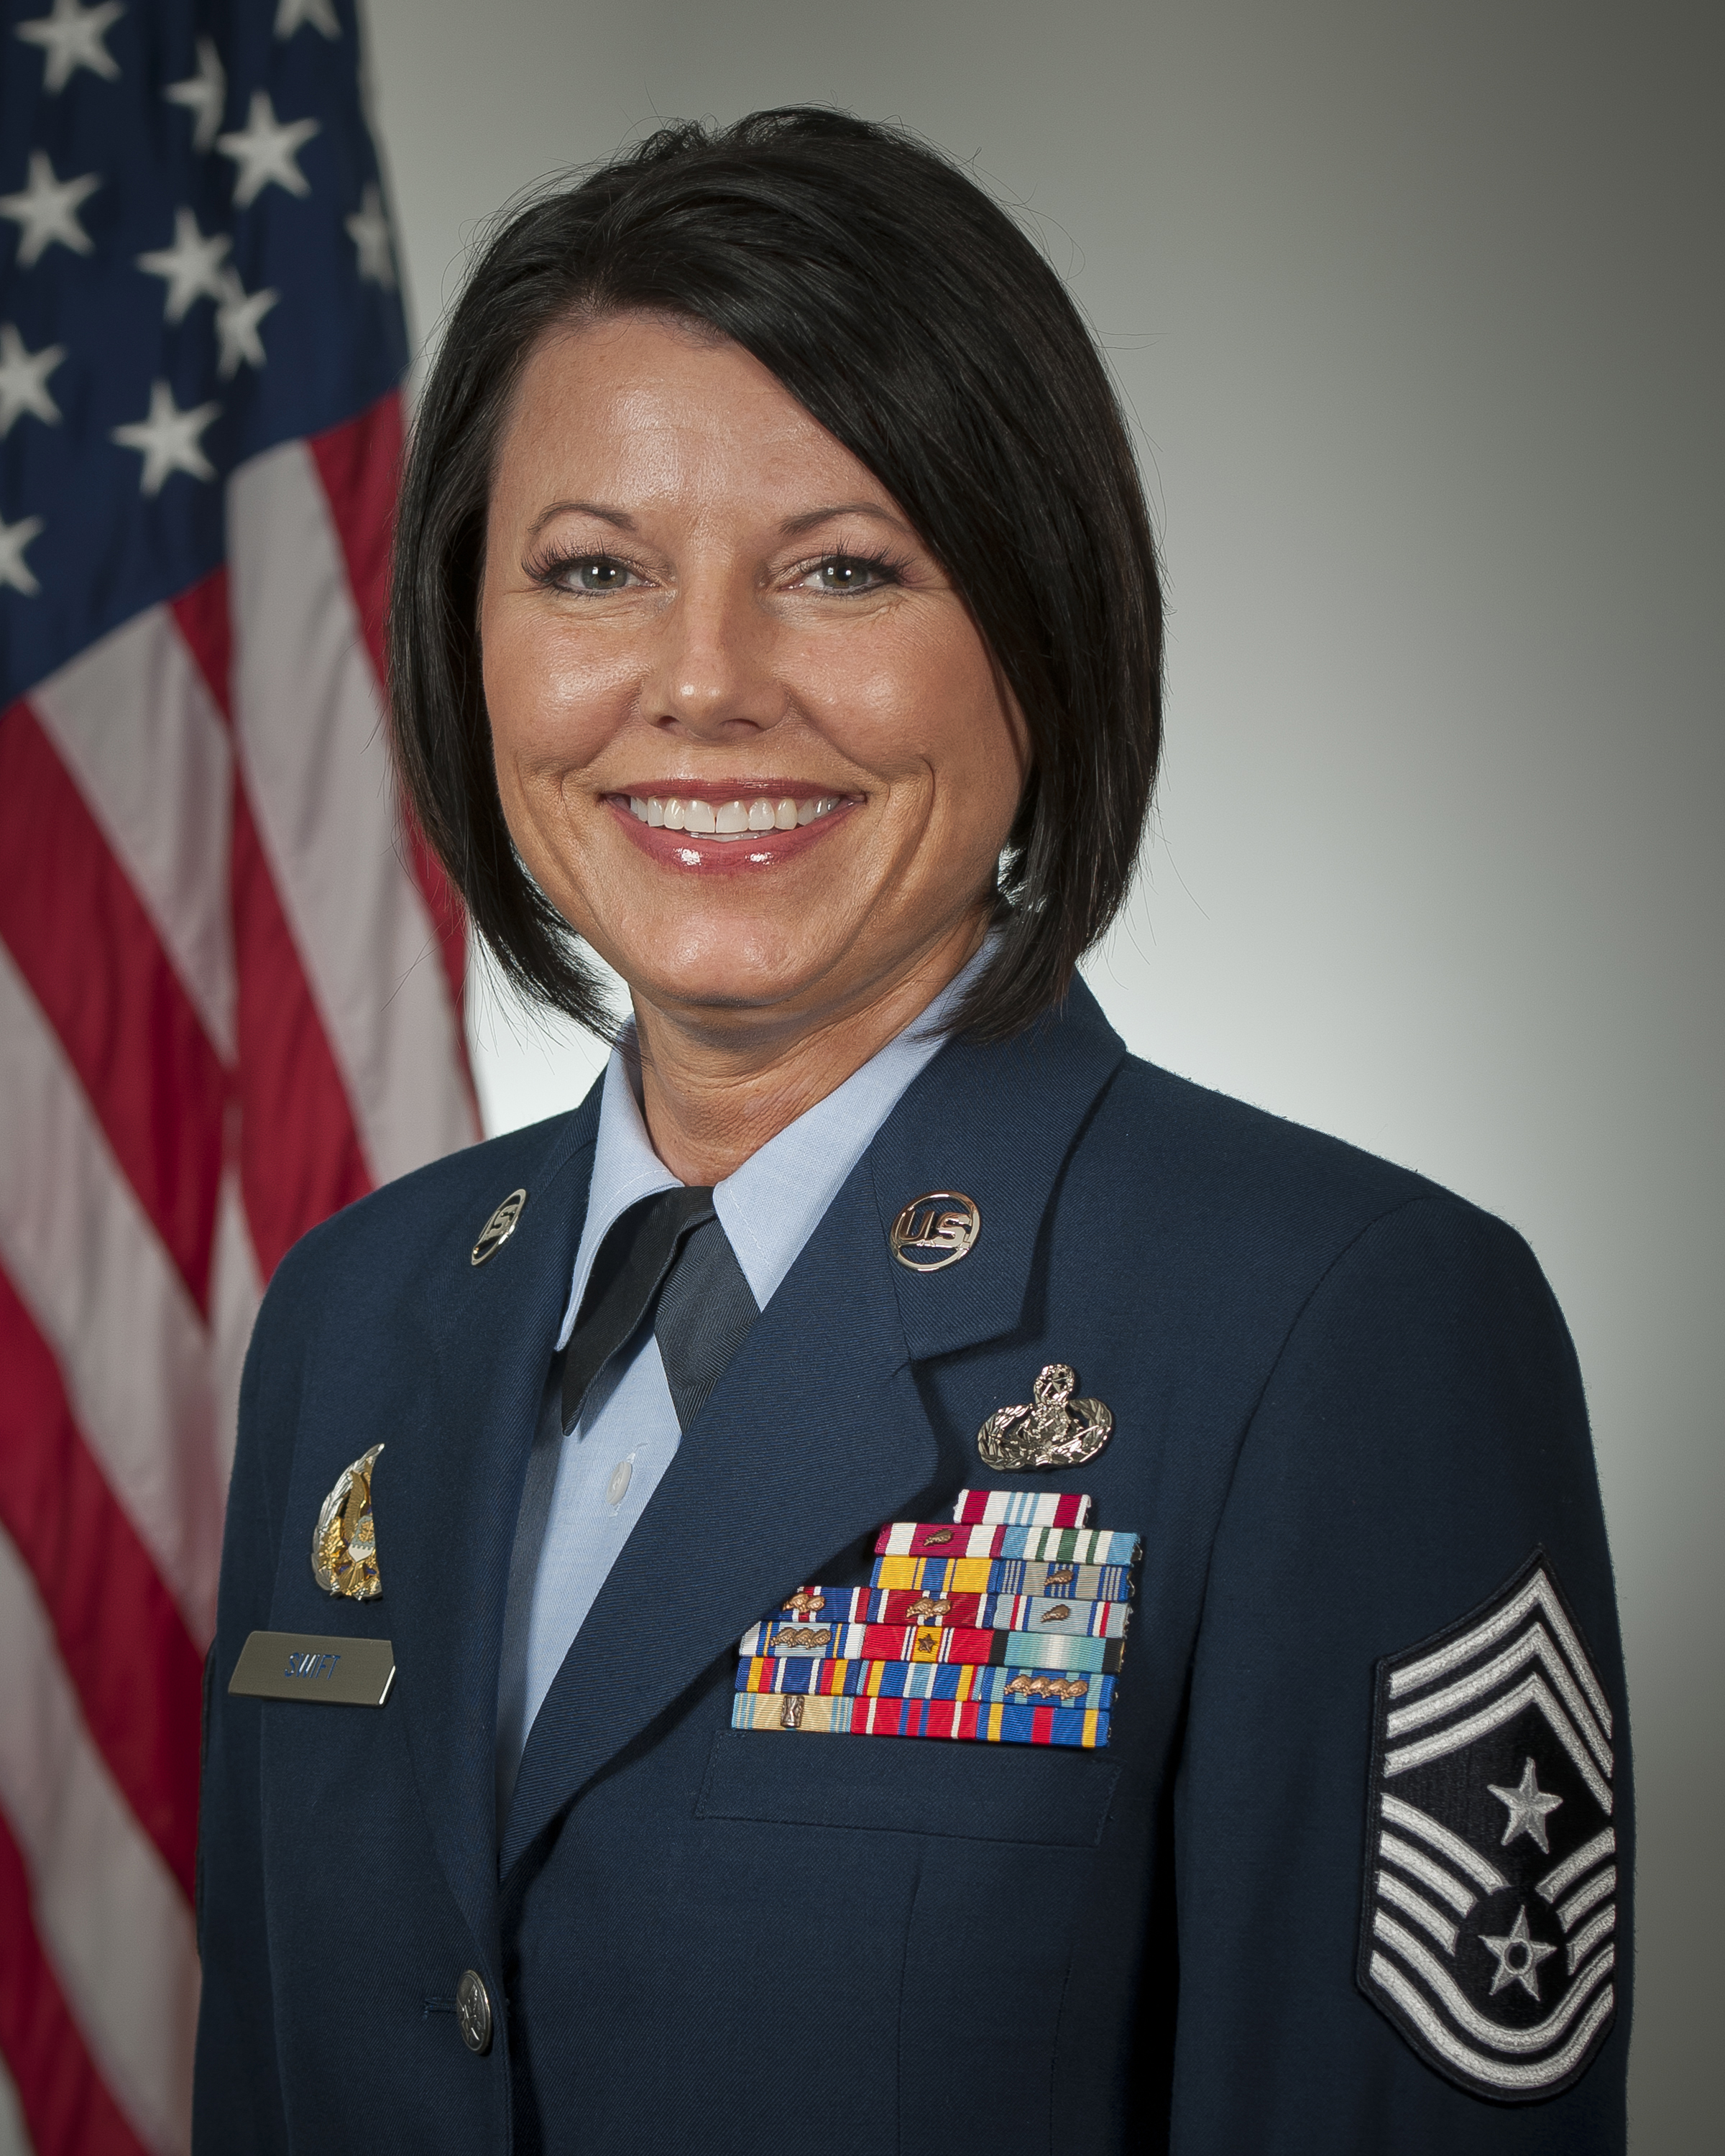 CMSgt. Nikese R. Swift